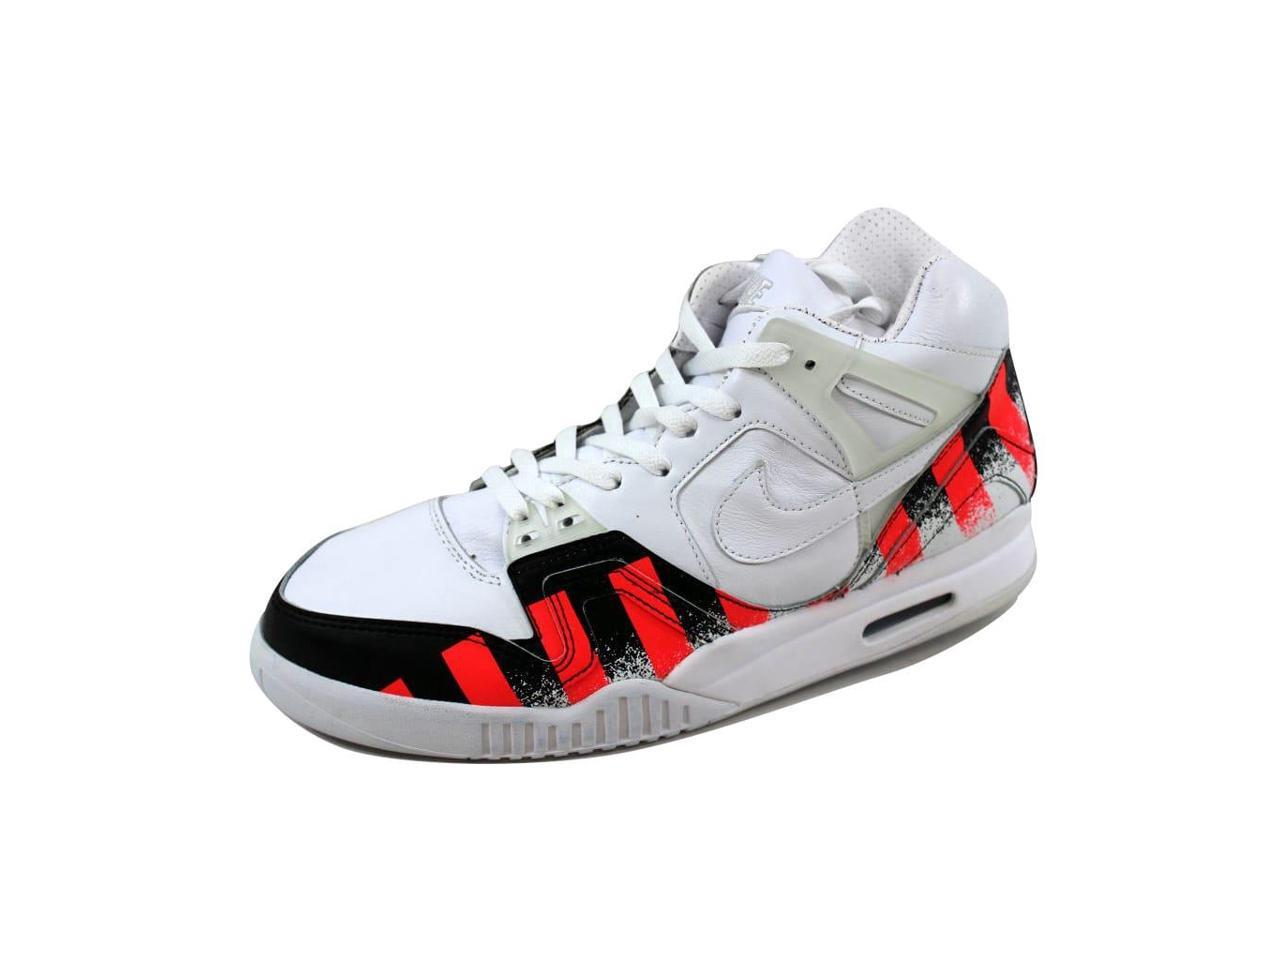 Nike Men's 2 Air Tech Challenge II 2 Men's SP White/White-Laser Crimson 621358-116 Size 9 59f26c